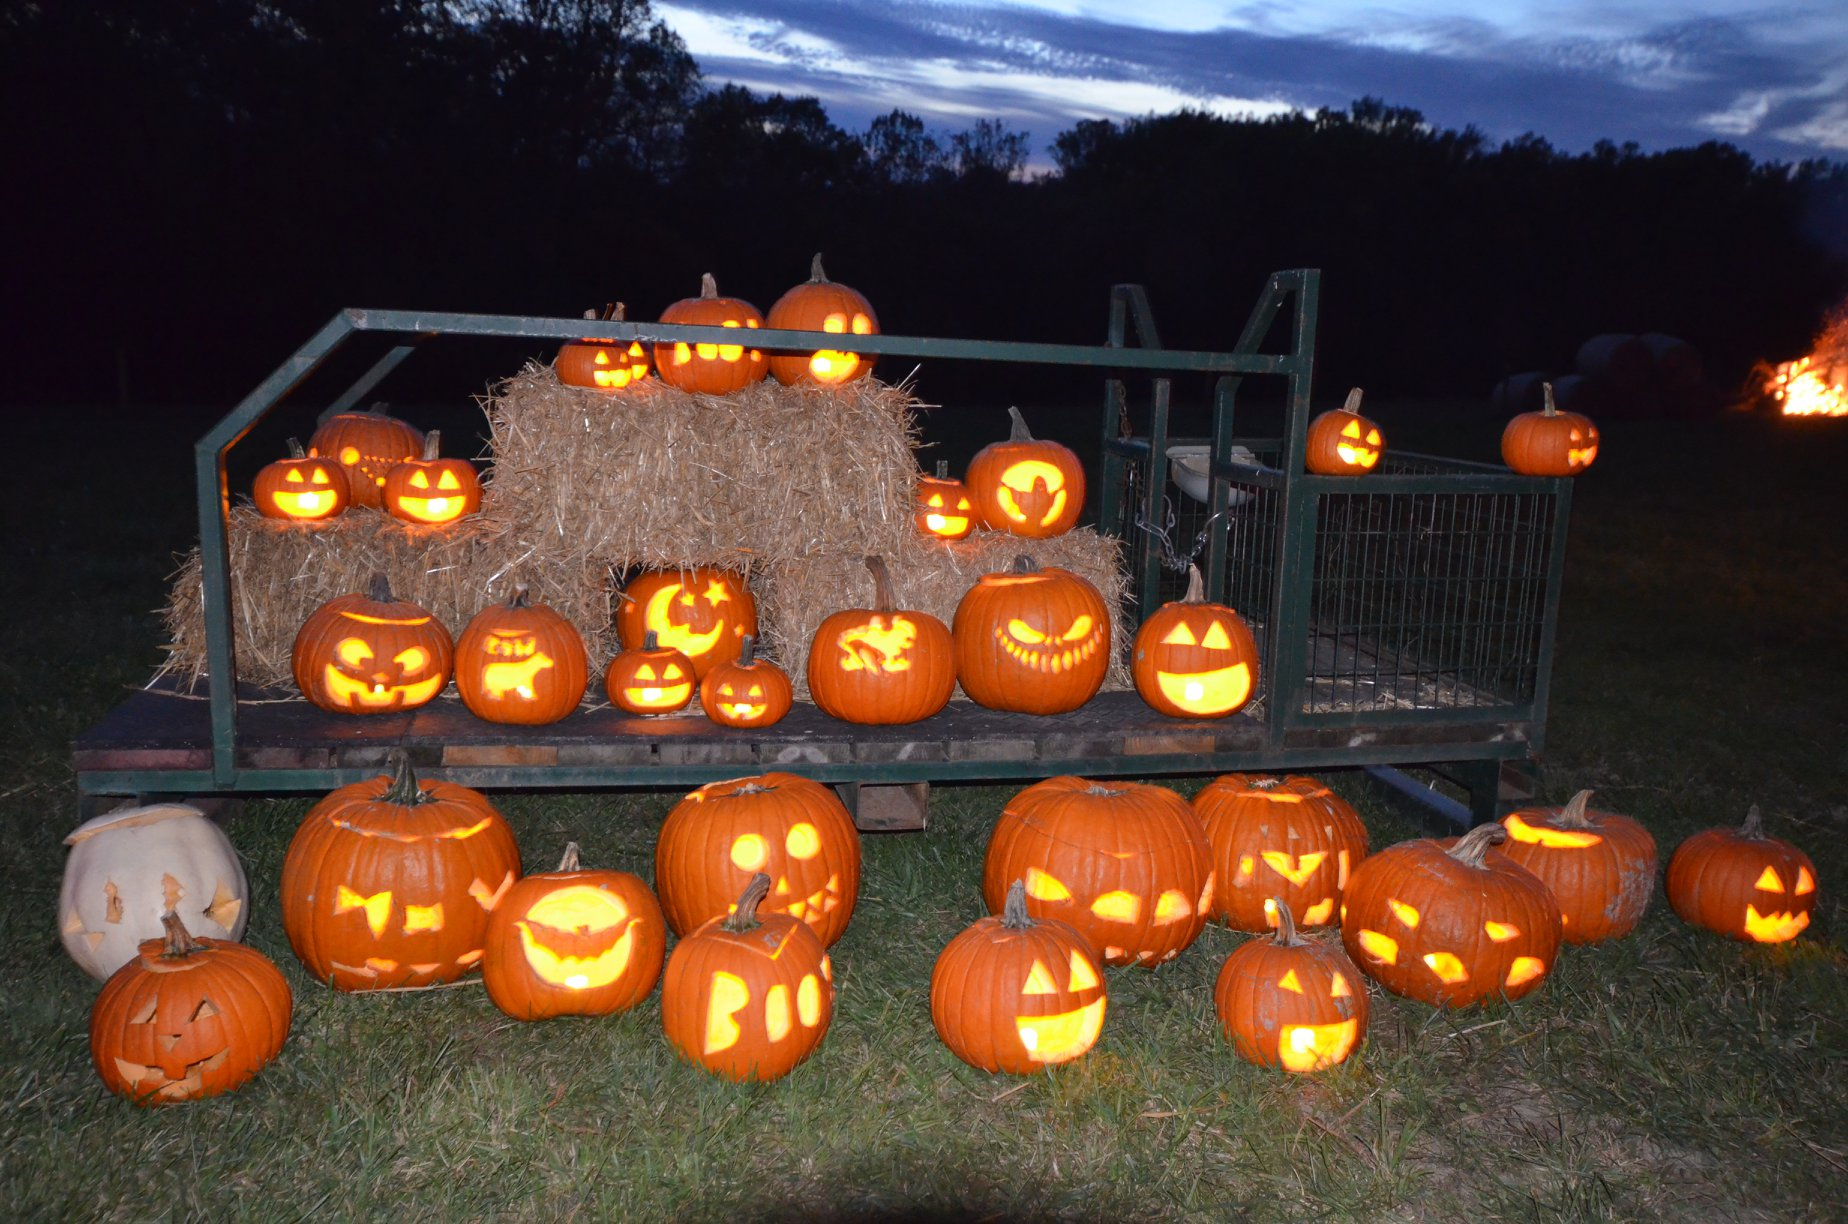 Halloween Events 2020 Maryland 2020 EVENT: Trail of Jack O Lanterns (October 16 17, 23 24, 30 31